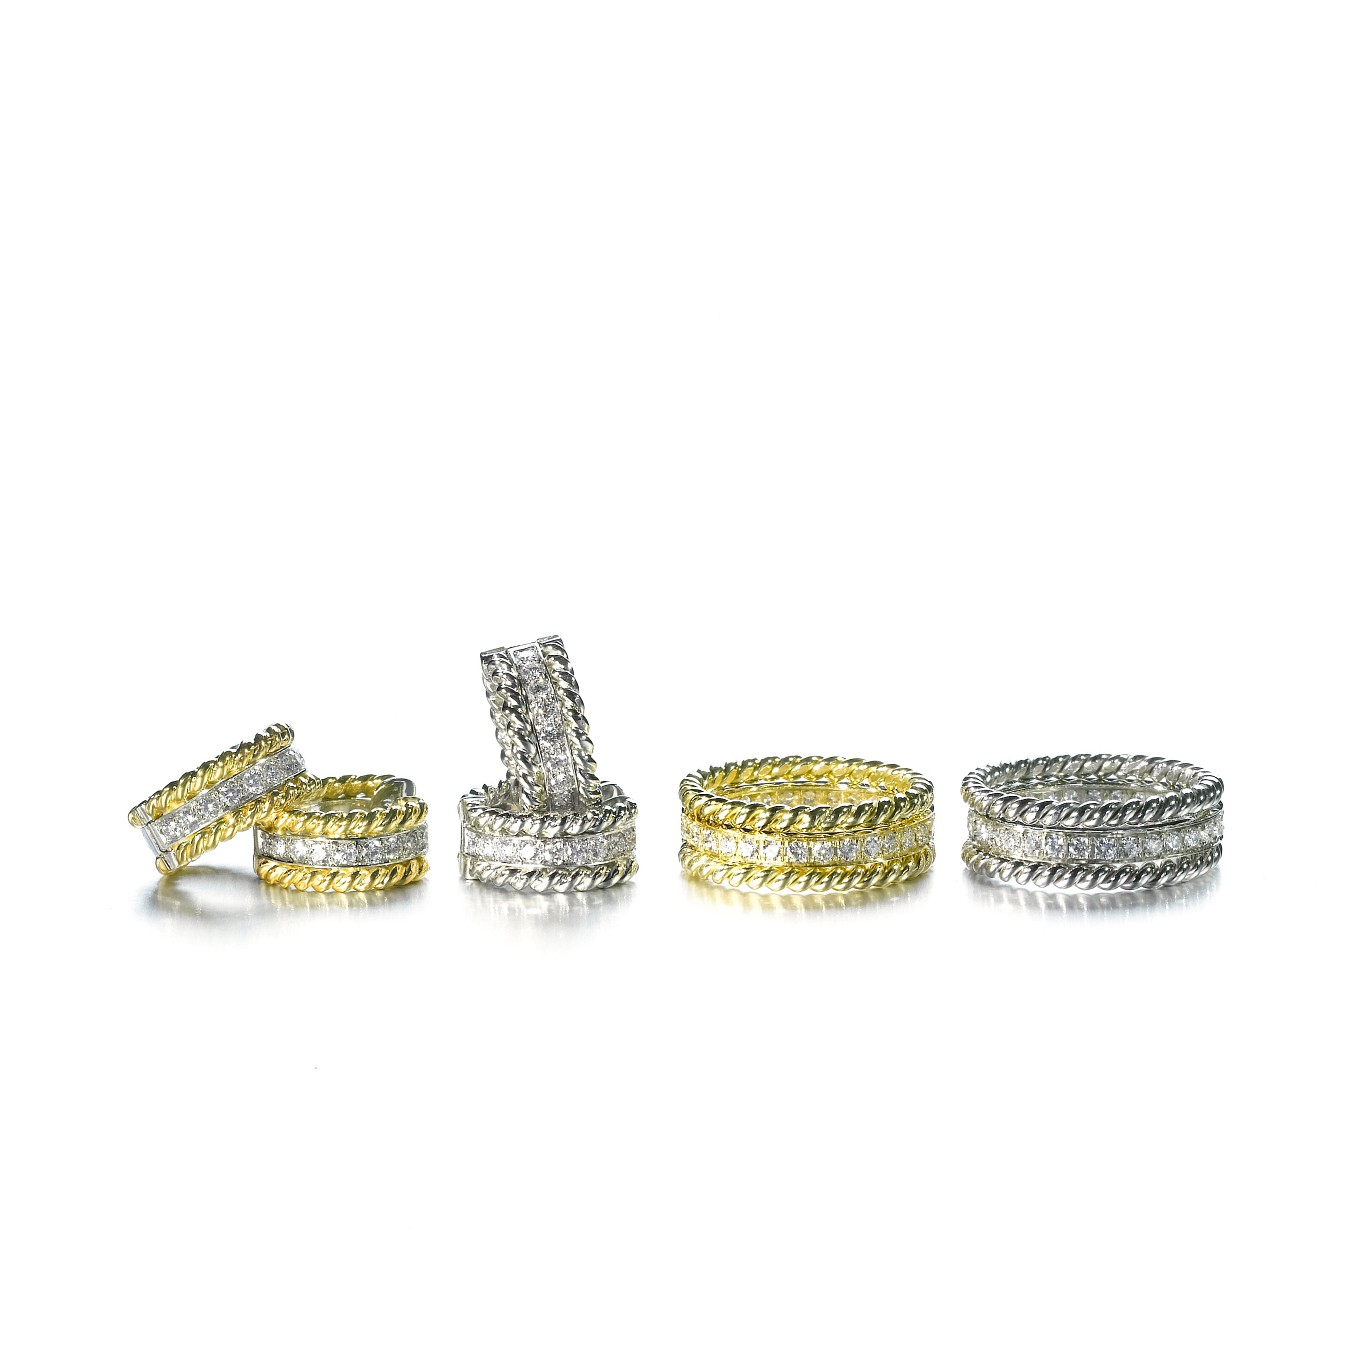 BRAID DIAMOND EARRINGS IN WHITE OR YELLOW GOLD. BRAID DIAMOND EARRINGS IN ALL WHITE GOLD. STACKED ETERNITY & BRAIDED BANDS RINGS IN ALL YELLOW & ALL WHITE GOLD